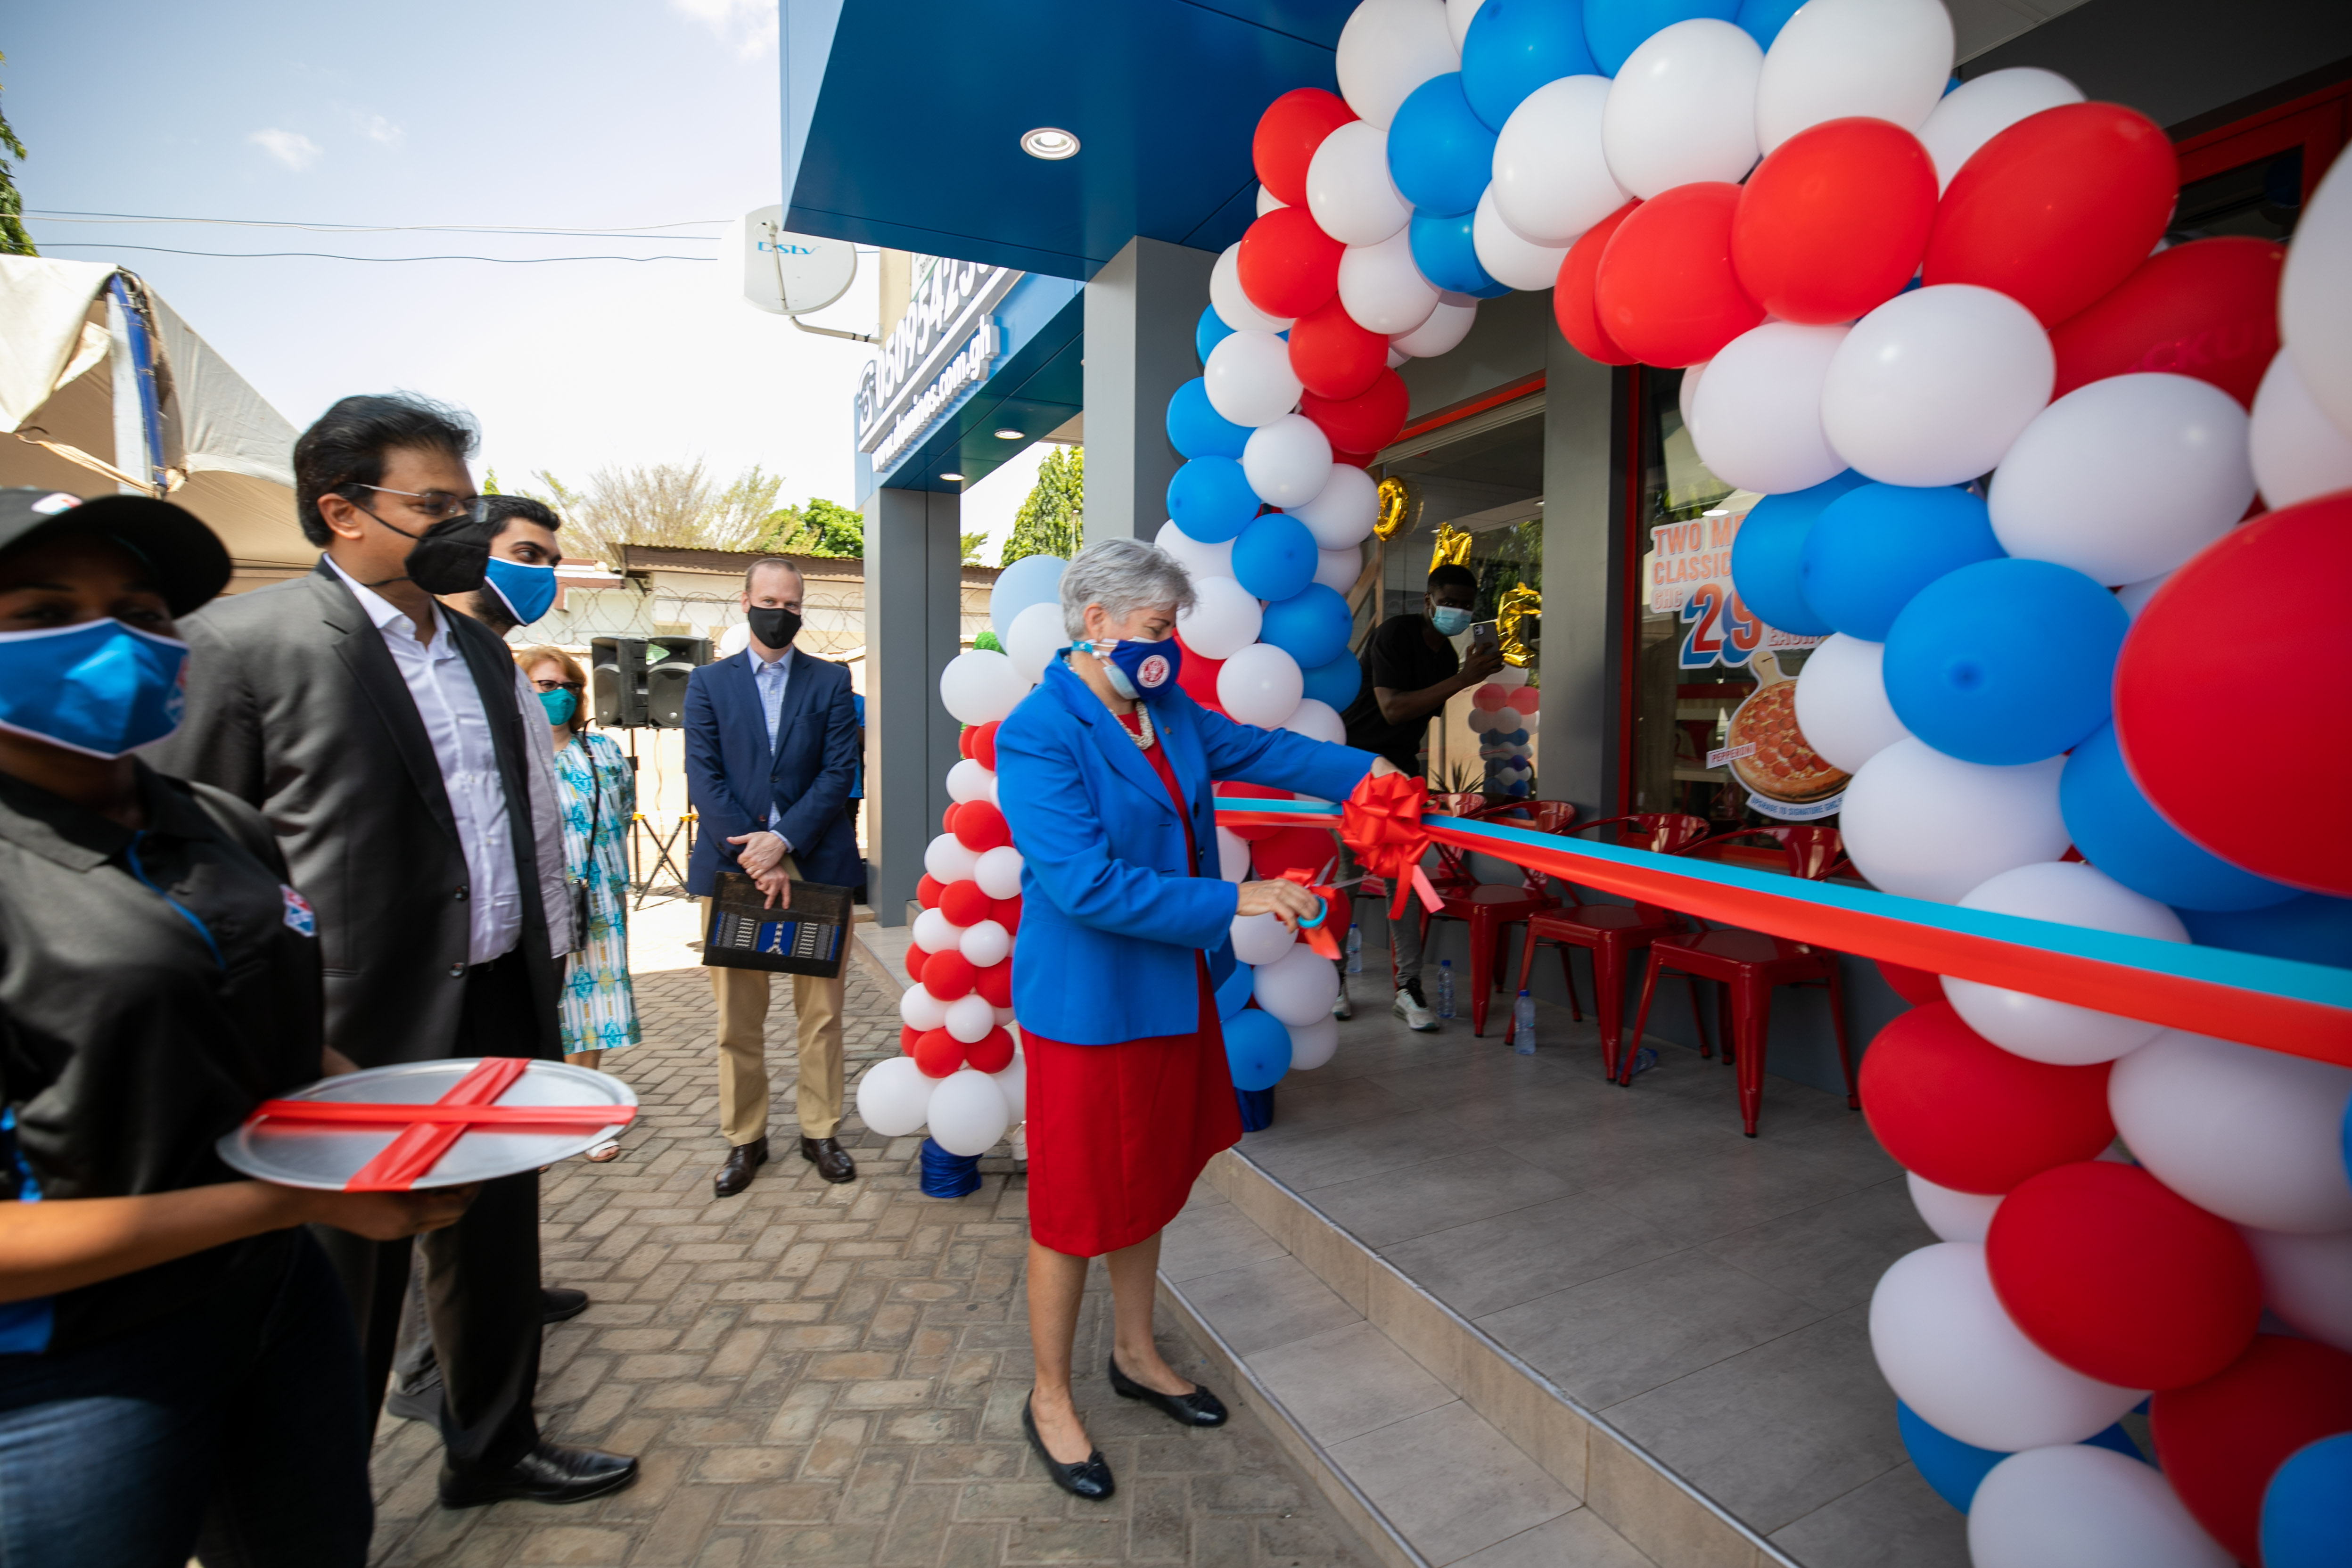 Opening of Domino's Pizza in East Legon – As Prepared Remarks by Ambassador Sullivan